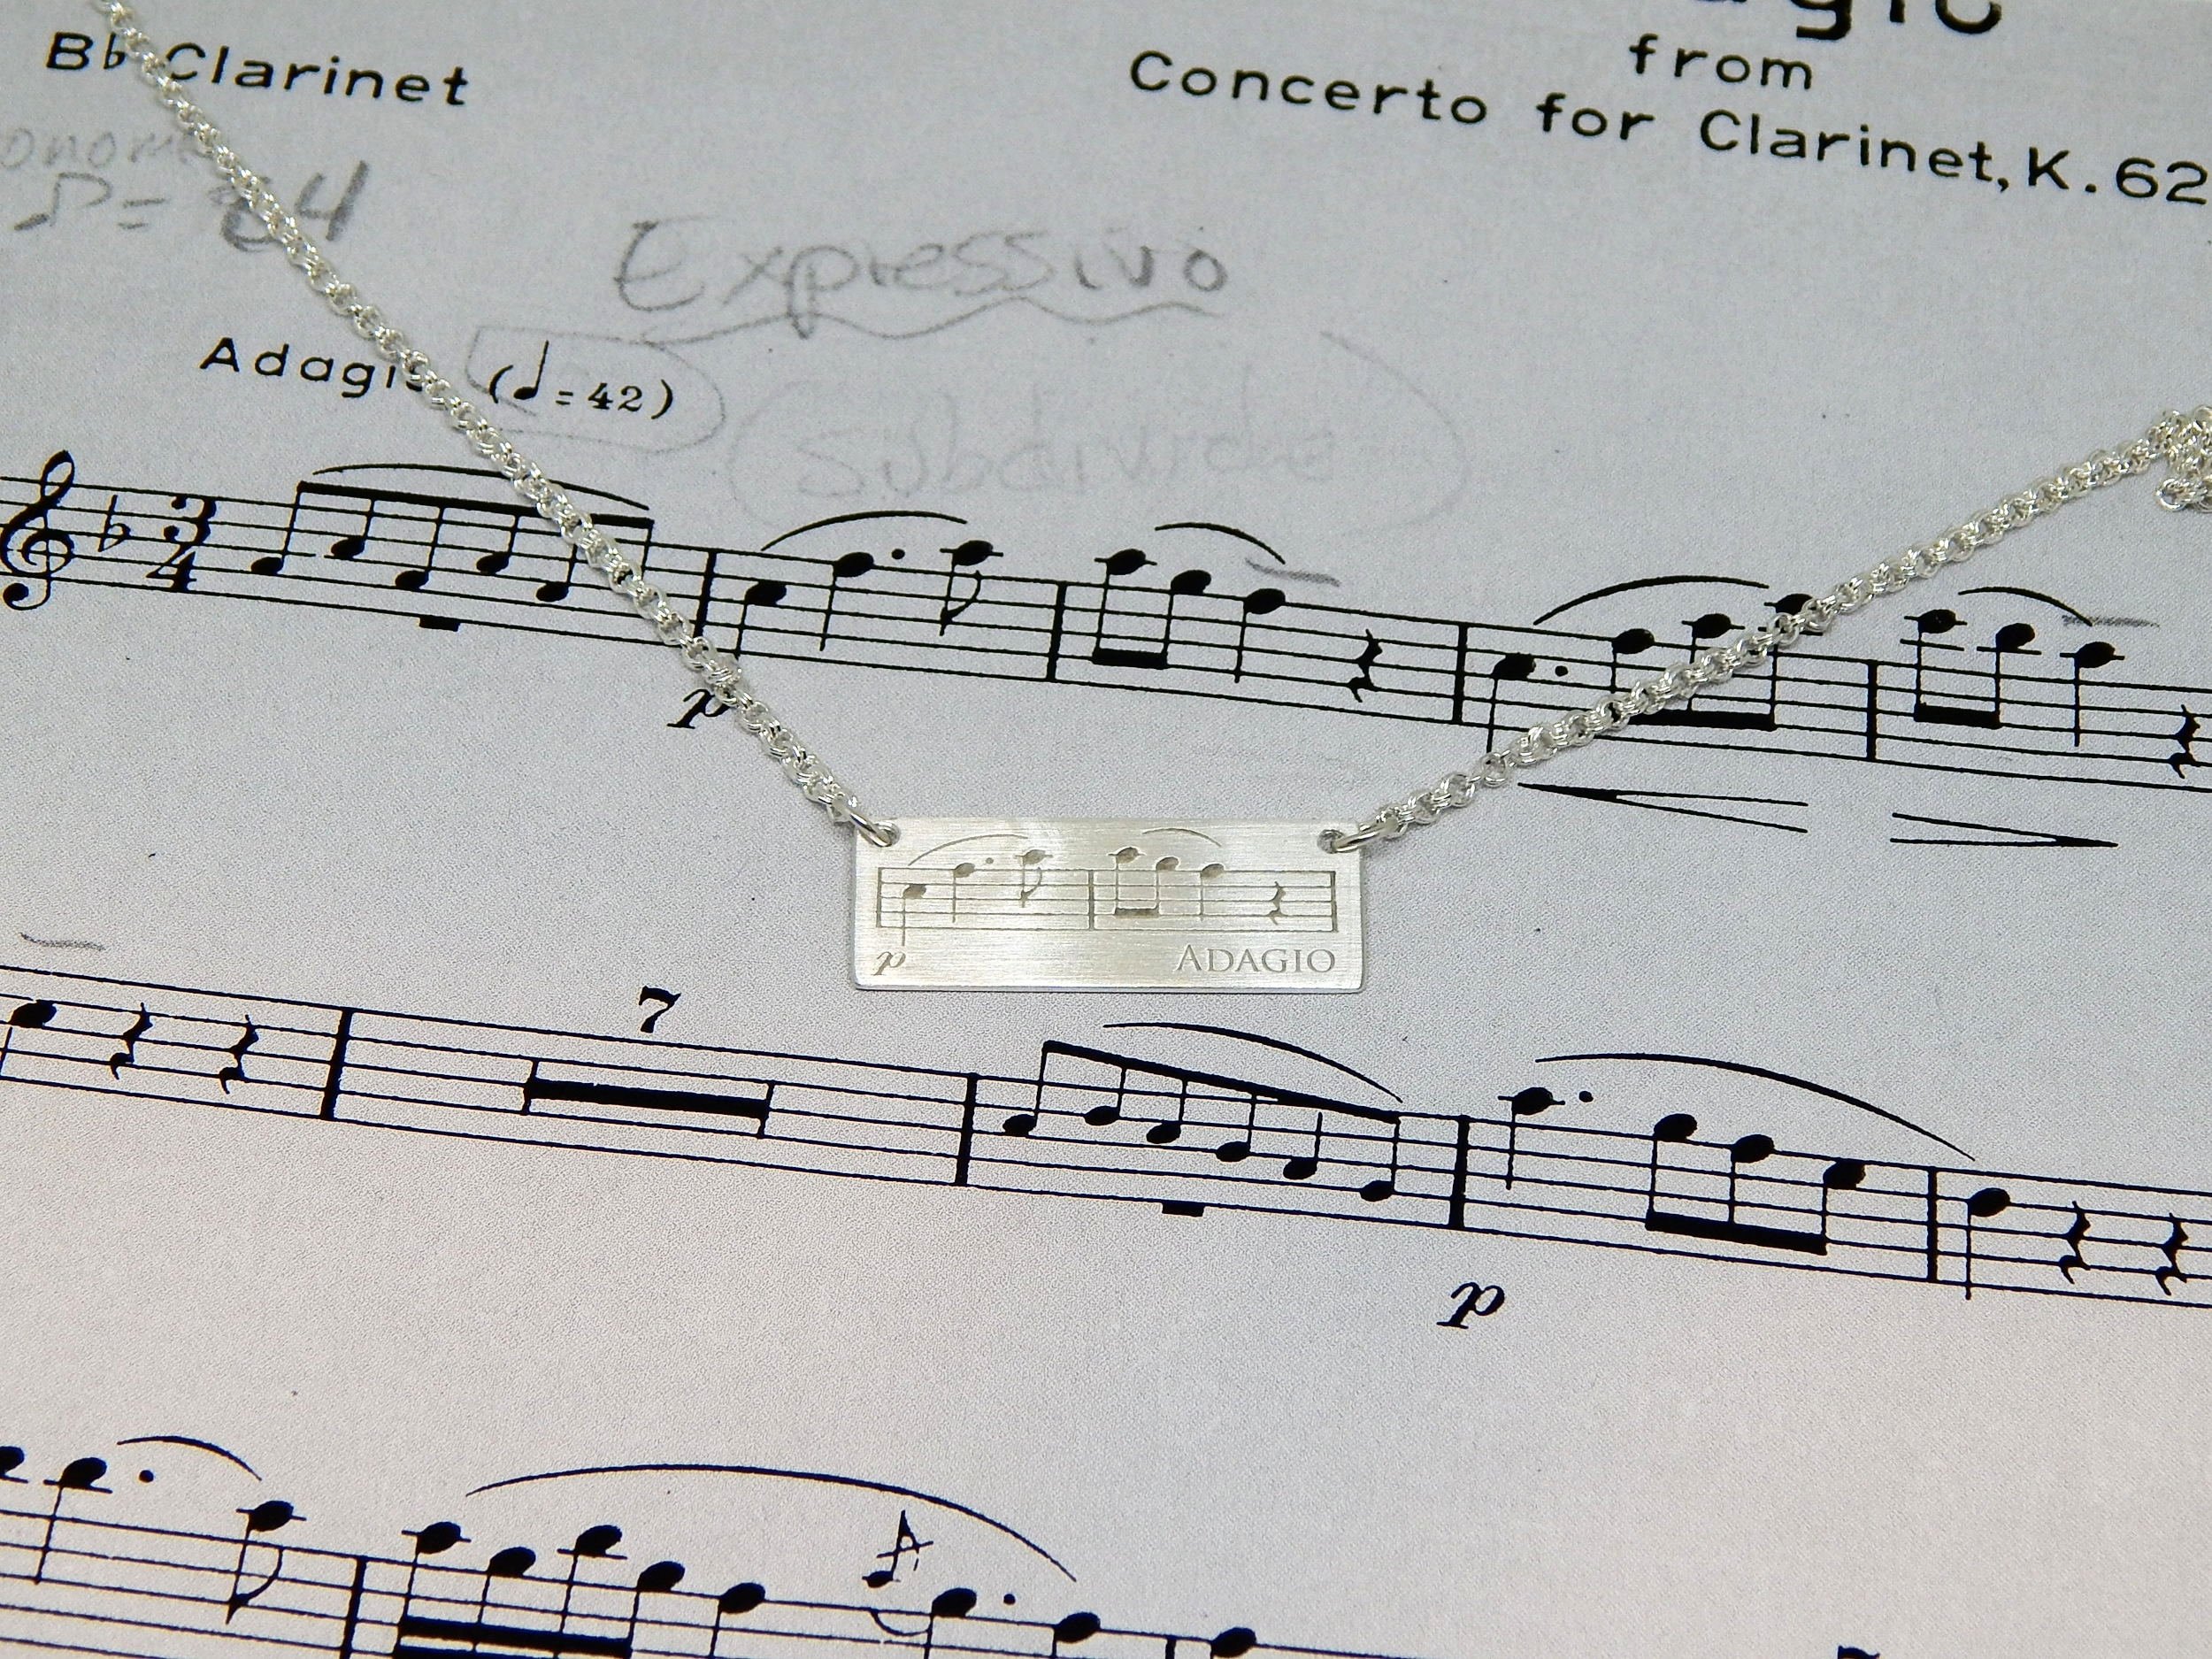 darvier-concerto-notes-engraving-sheet-music.JPG